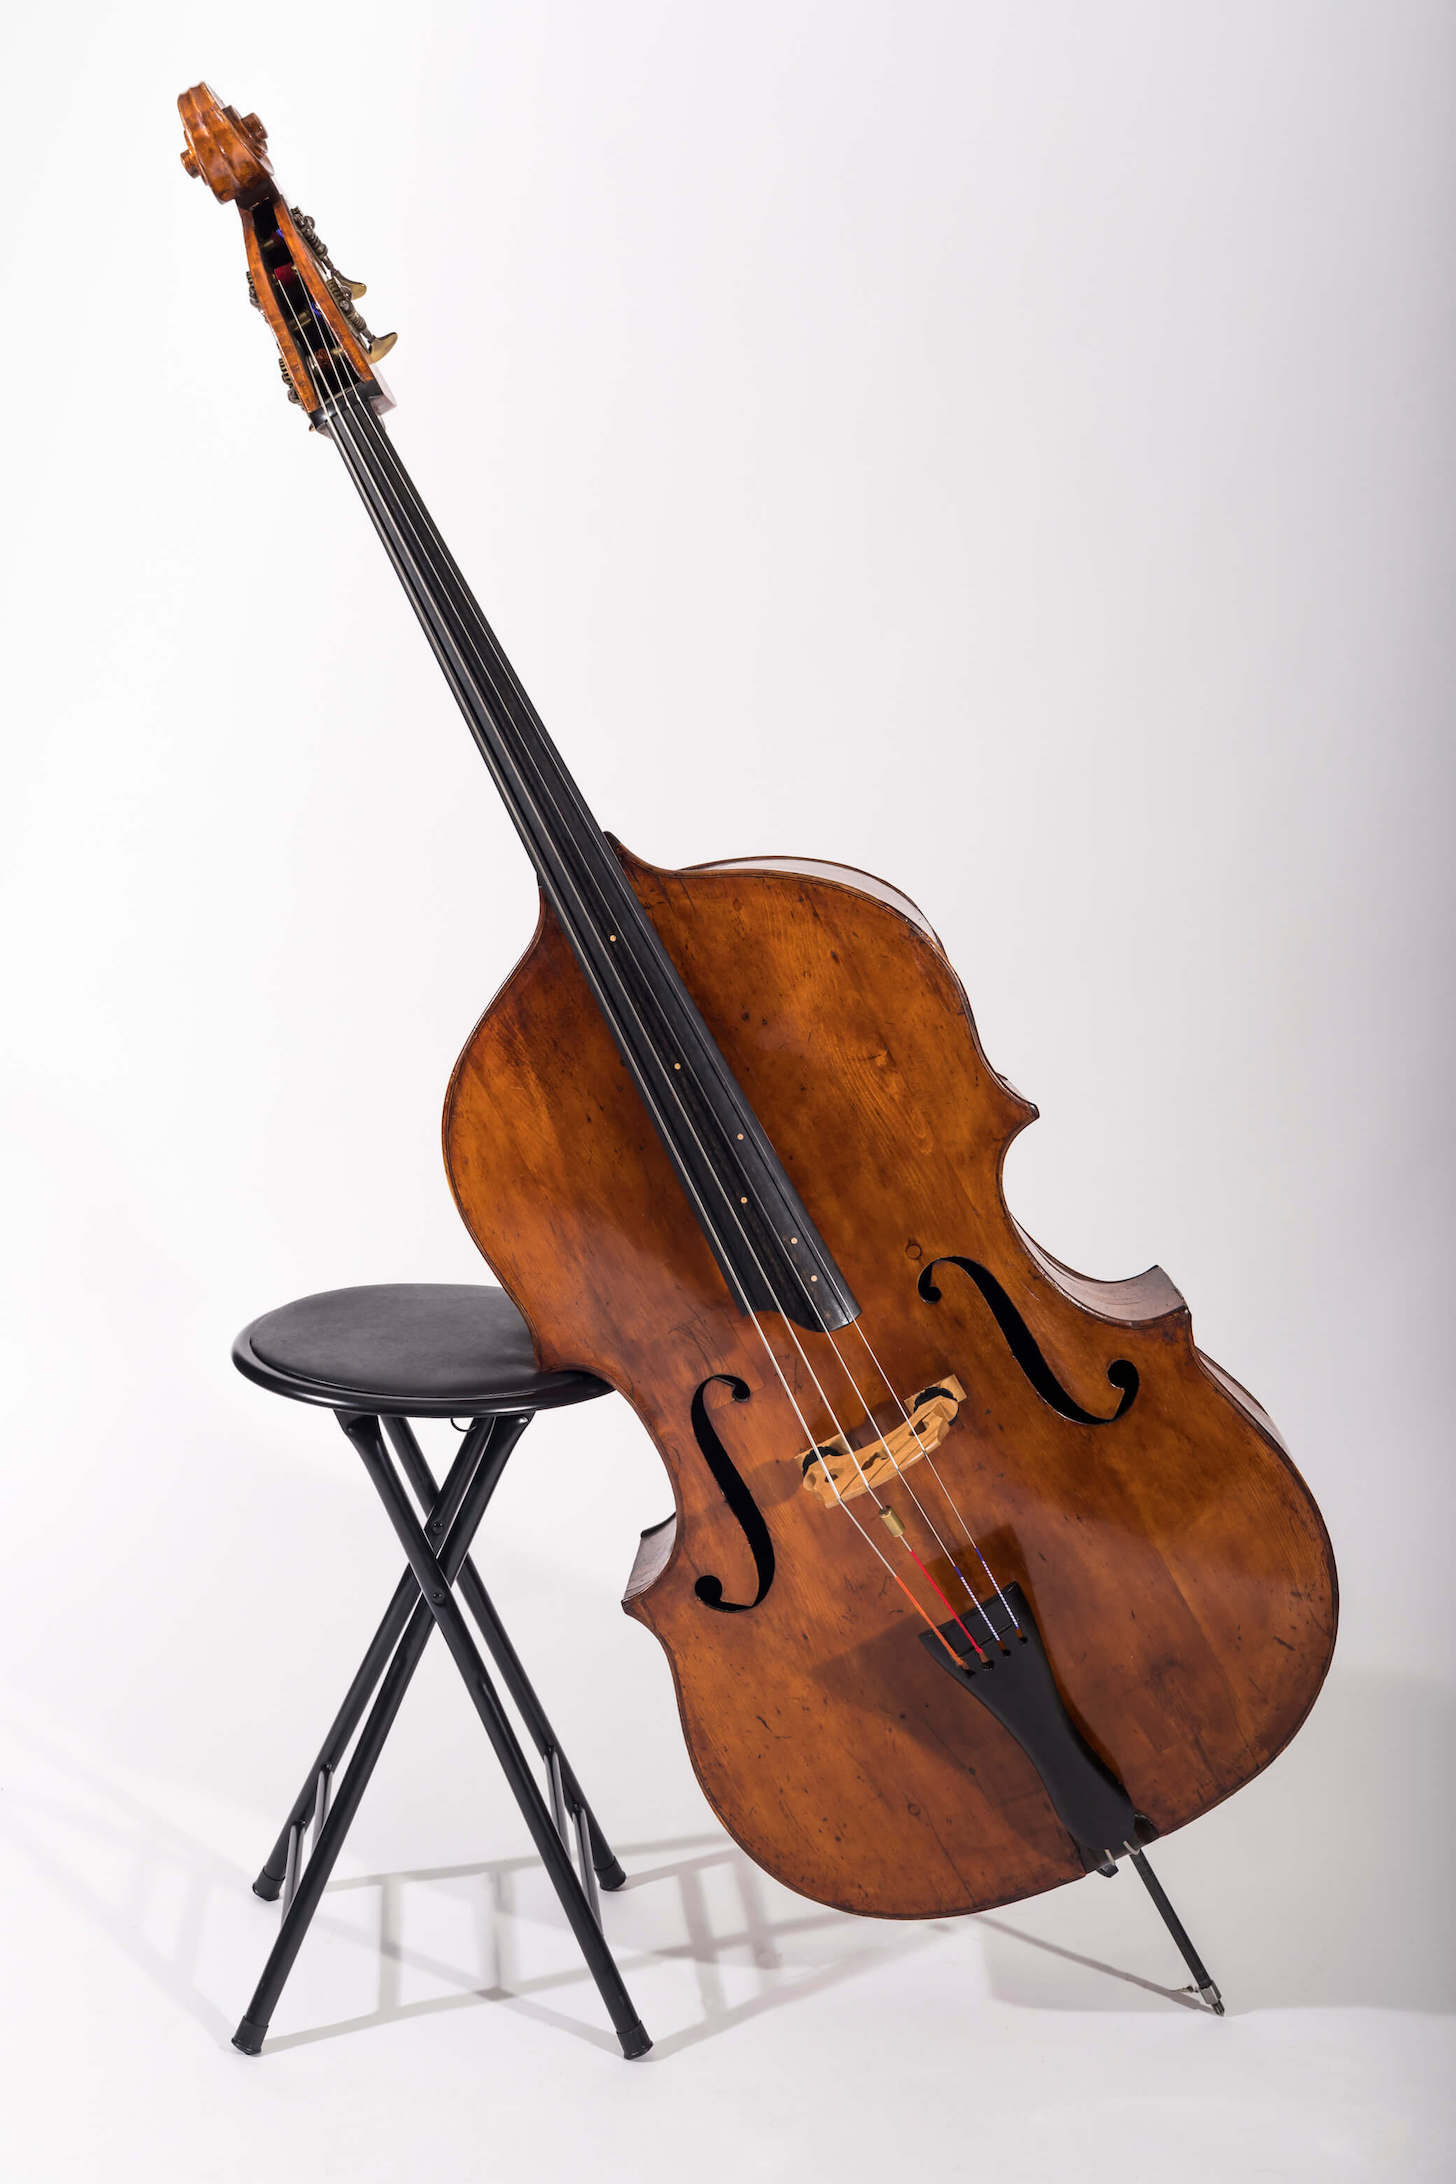 Lauren_Pierce_Double_Bass1.jpg